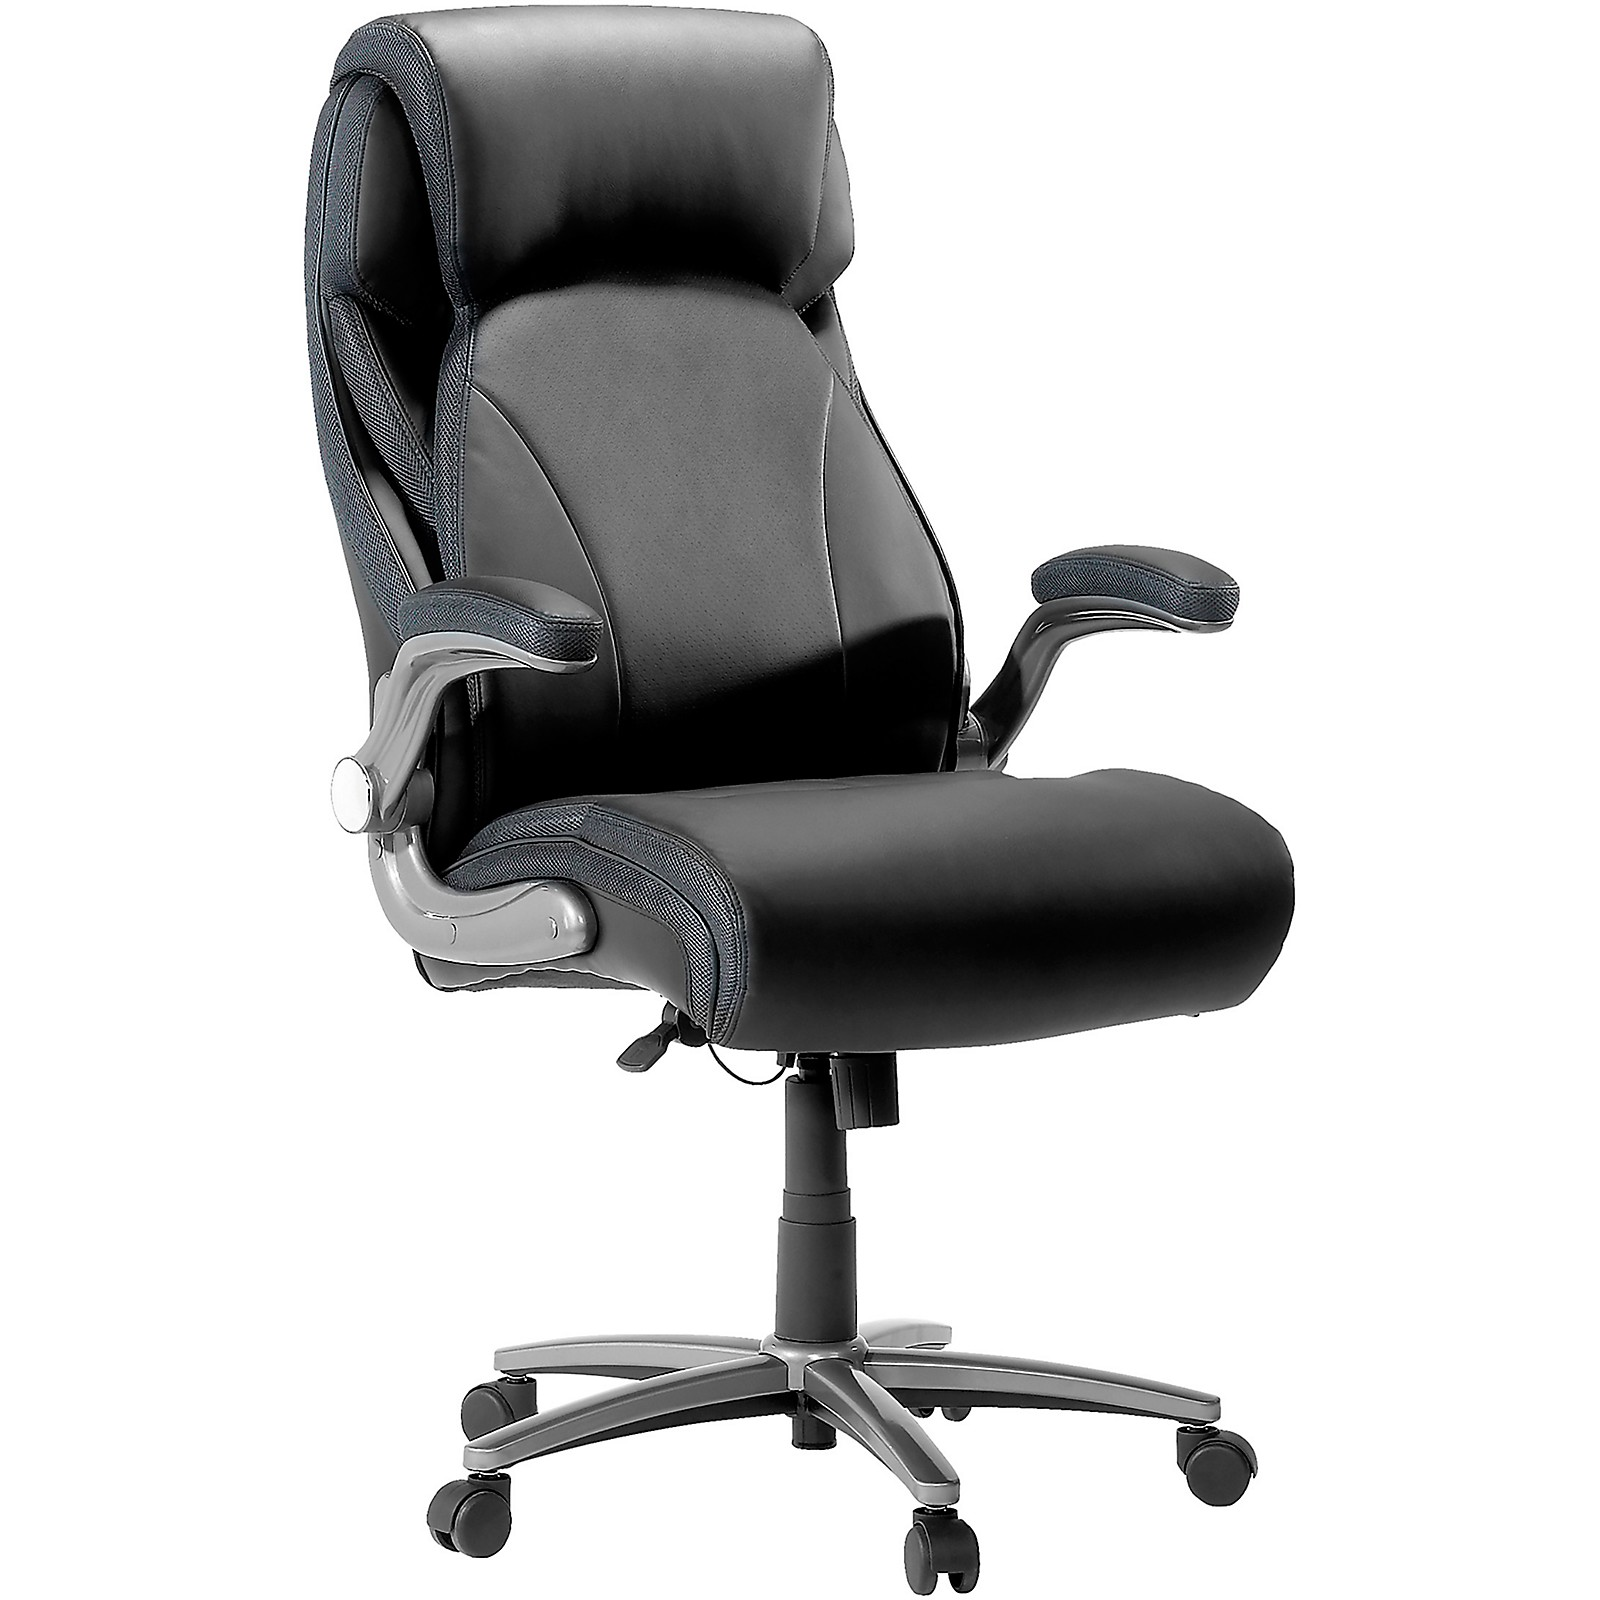 Open Box SAUDER WOODWORKING CO. Big & Tall Office Chair Black